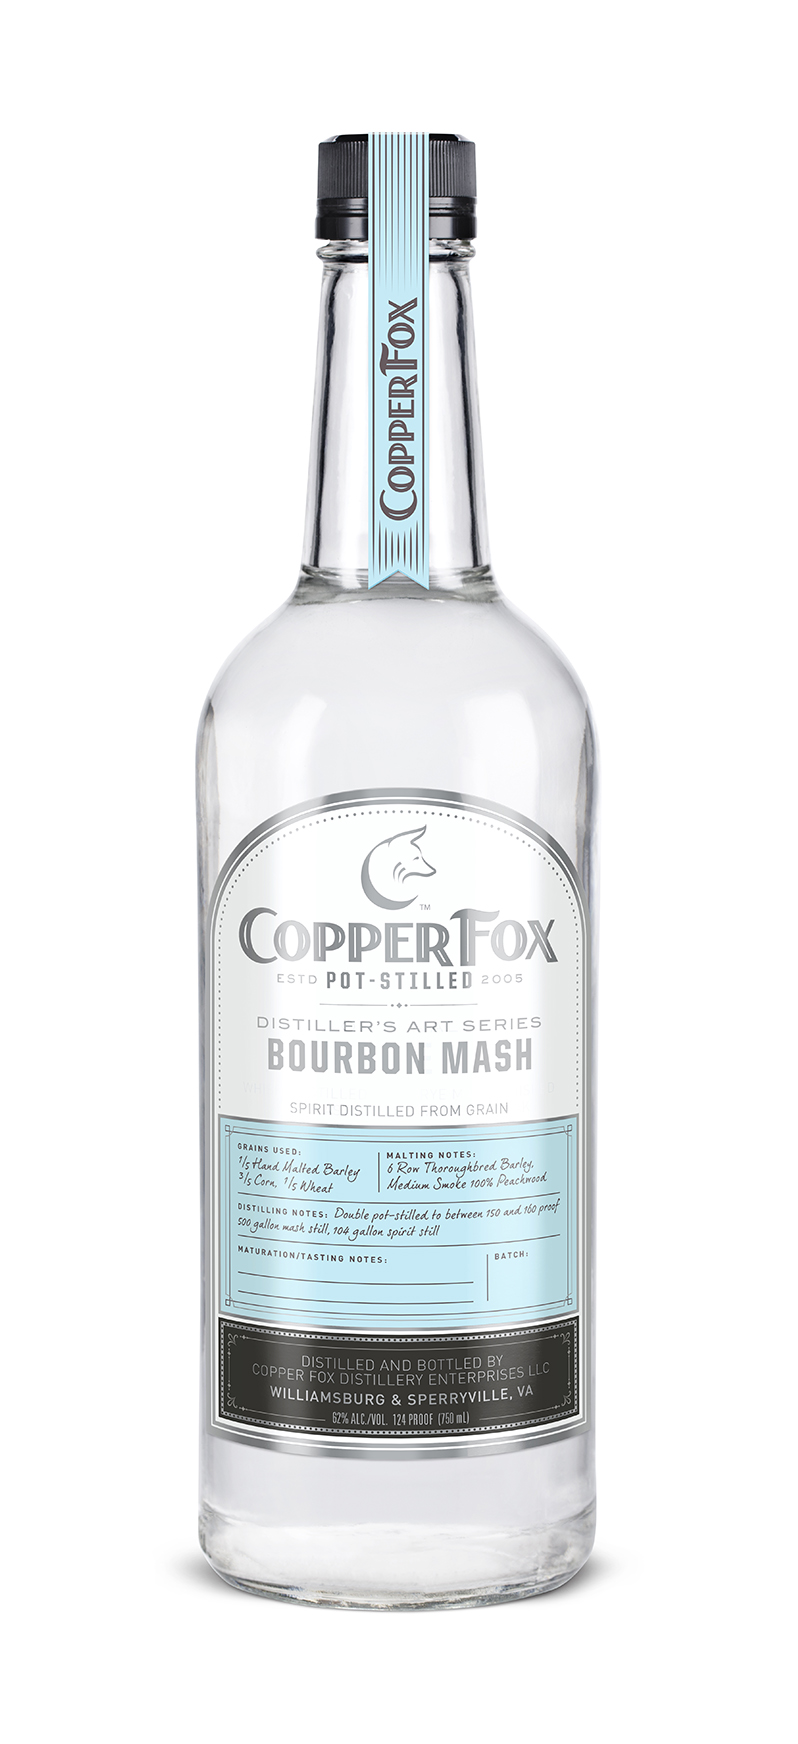 "COPPER FOX BOURBON MASH - The third in our innovative ""Distiller's Art Series,"" this clear spirit is is bottled at barrel strength prior to aging and is hand crafted from 60% Virginia corn, 20% Virginia wheat and 20% Virginia barley, and the 20% barley in the mash bill is uniquely smoked with peachwood.Unlike neutral grain spirits, which are distilled at 190 proof and above, our spirits are hand crafted and carefully distilled at just under 160 proof, utilizing a process which allows the complete essence and flavor of the barley grain to come through.Enjoy this Bourbon Mash as a foundation for creating marvelous cocktails; substituting it for many other spirits in your favorite recipes. In addition, we invite you to replicate the aging process at home in our new lightly charred American white oak barrels. The cask strength (124 proof) spirit is the best strength to optimize the reaction of spirit and wood.Delicate peach-wood smoke gives way to a buttered corn nose. Hints of pepper and cinnamon set up tongue for a silky sweet finish. Floral body leaves your mouth salivating for more.‹ PreviousBack to GalleryNext ›"